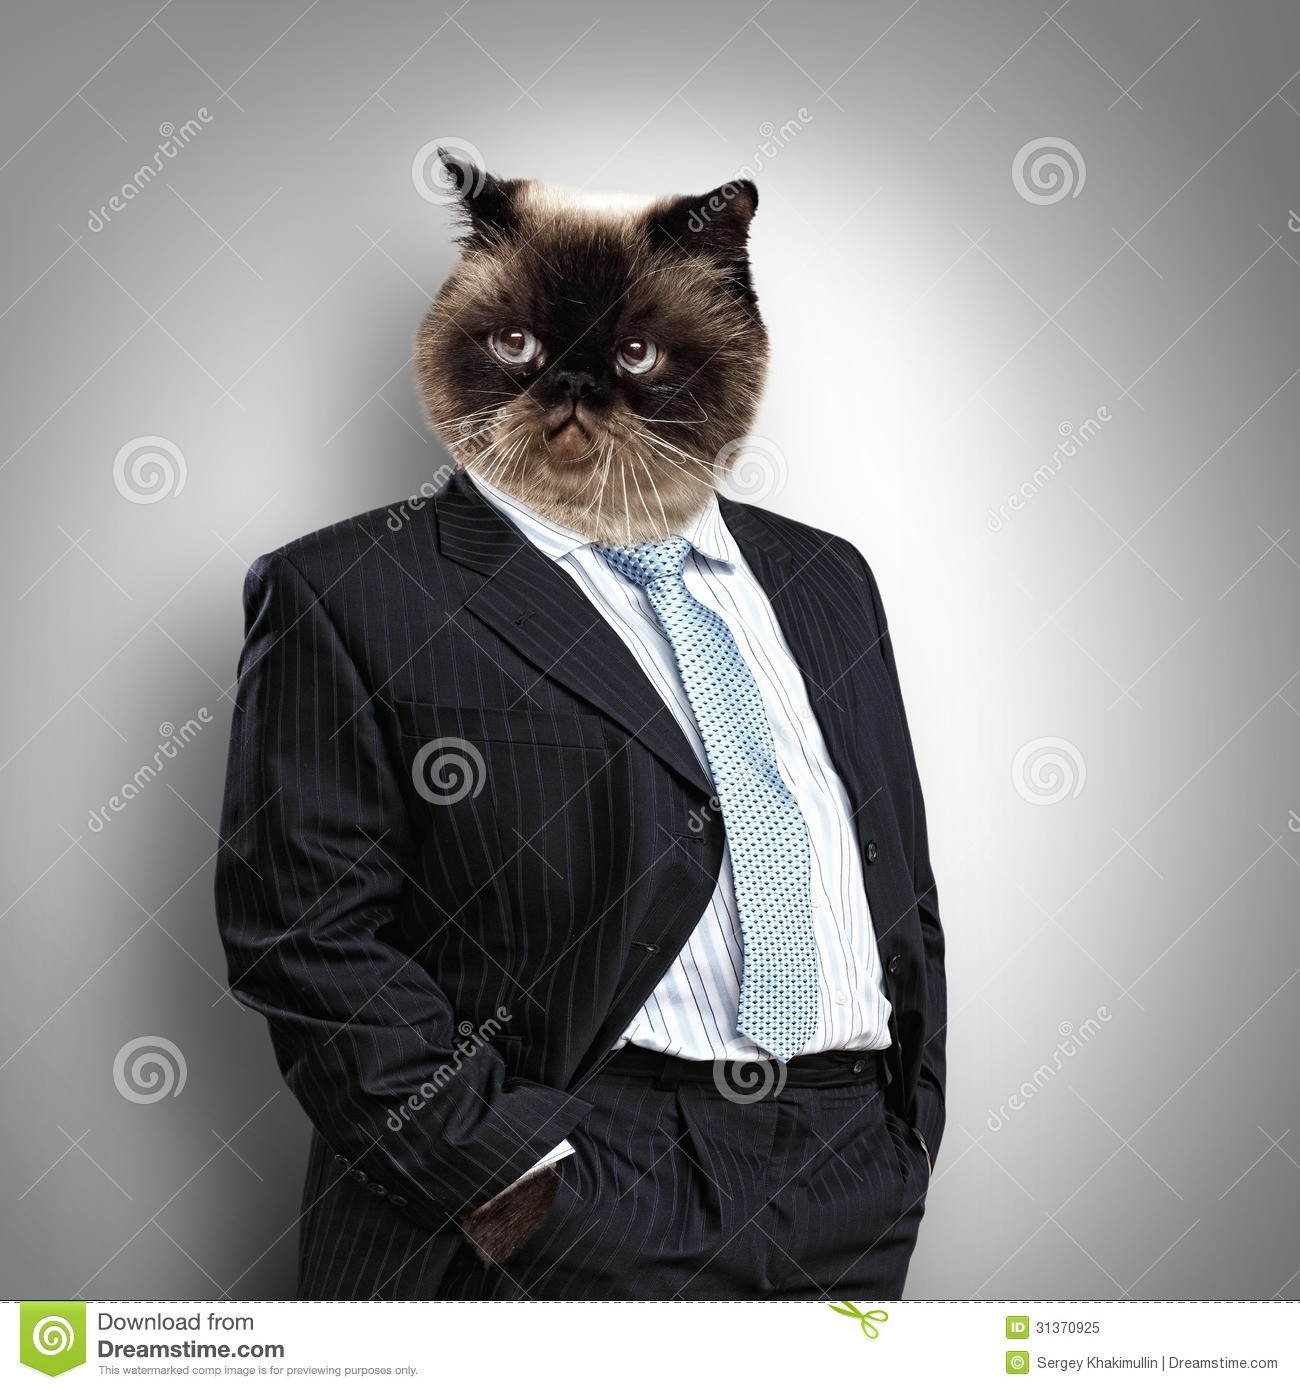 Funny Fluffy Cat In A Business Suit Royalty Free Stock ...